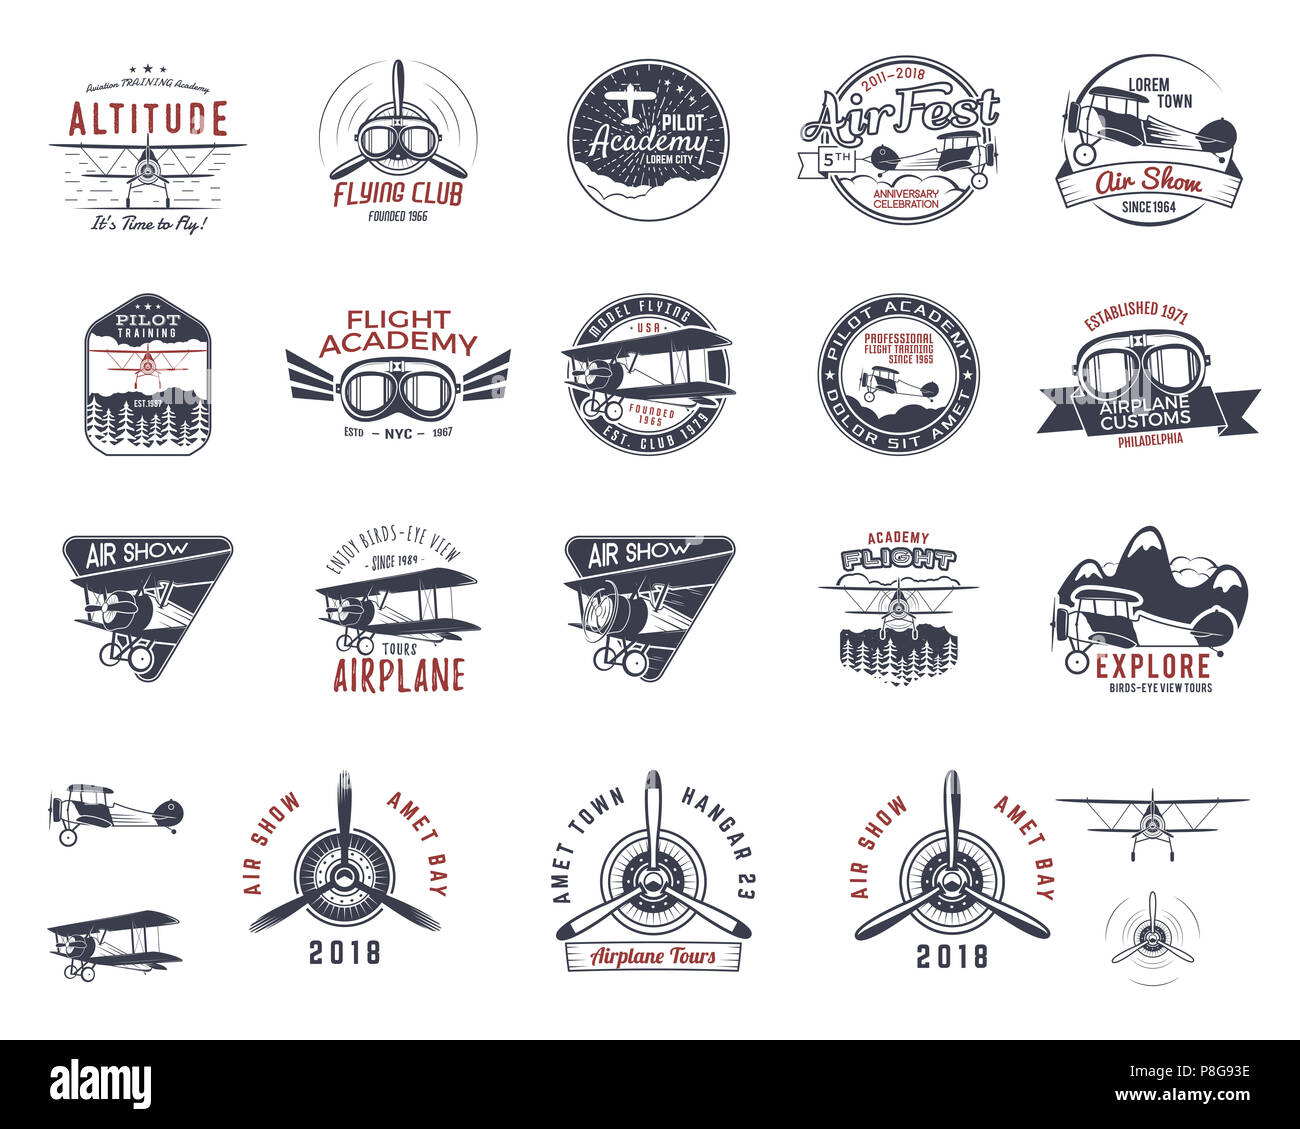 Vintage hand drawn old fly stamps. Travel or business airplane tour emblems. Biplane academy labels. Retro aerial badge isolated. Pilot school logo. Plane tee design, prints, web design. Stock  - Stock Image